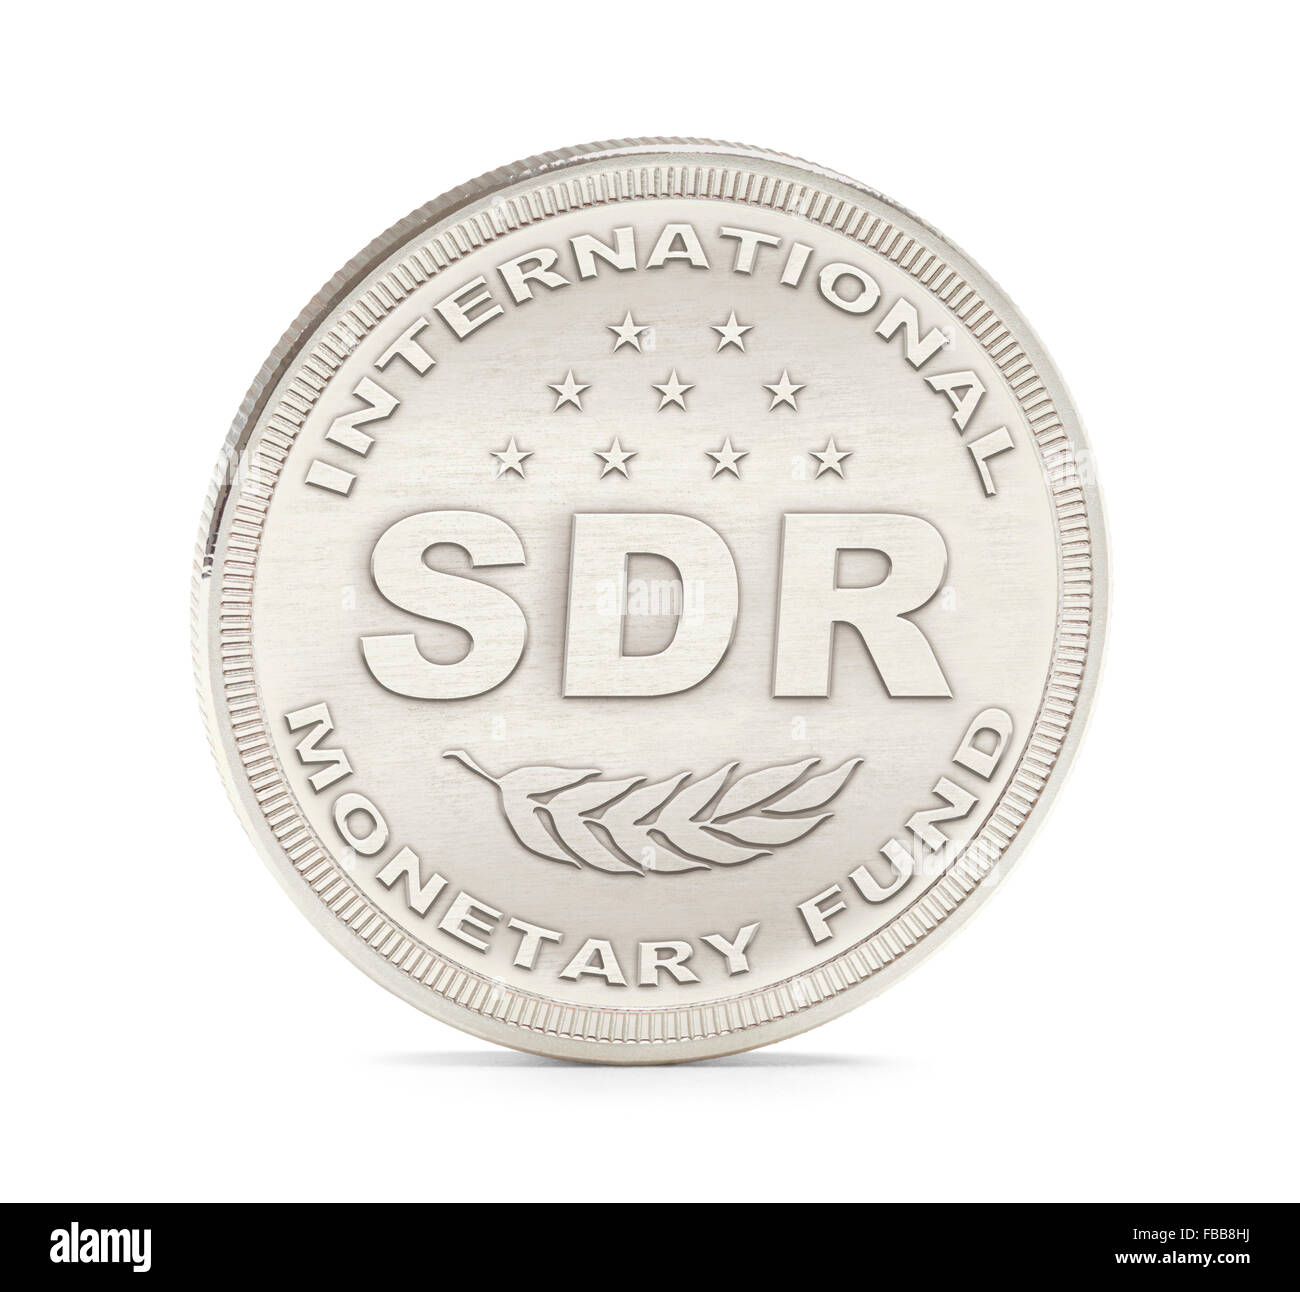 International Monetary Fund Special Drawing Rights Coin Isolated on White Background. - Stock Image